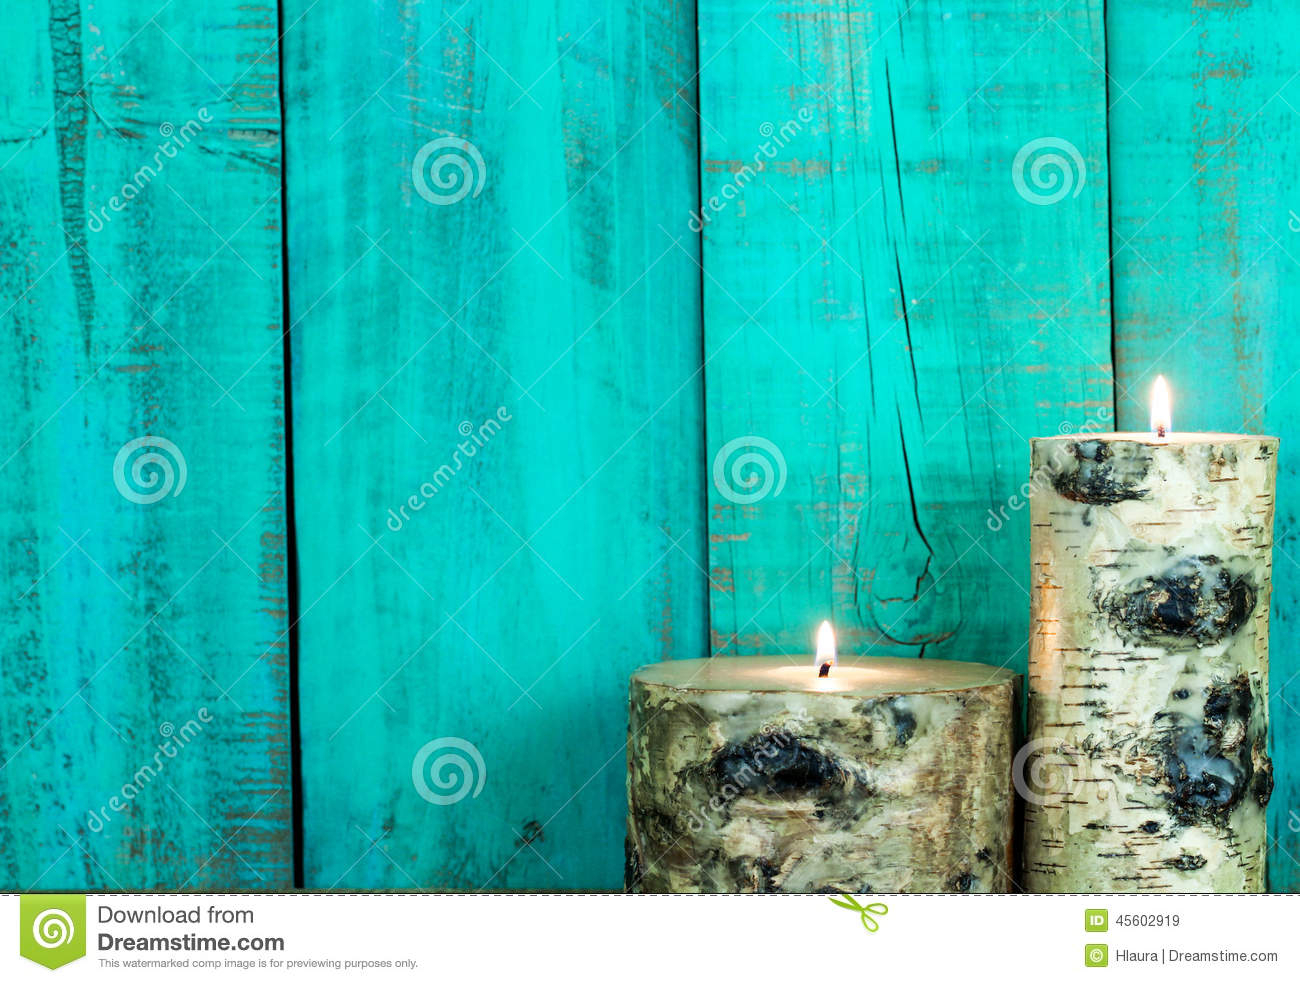 Textured Log Candles Burning By Antique Teal Blue Wooden